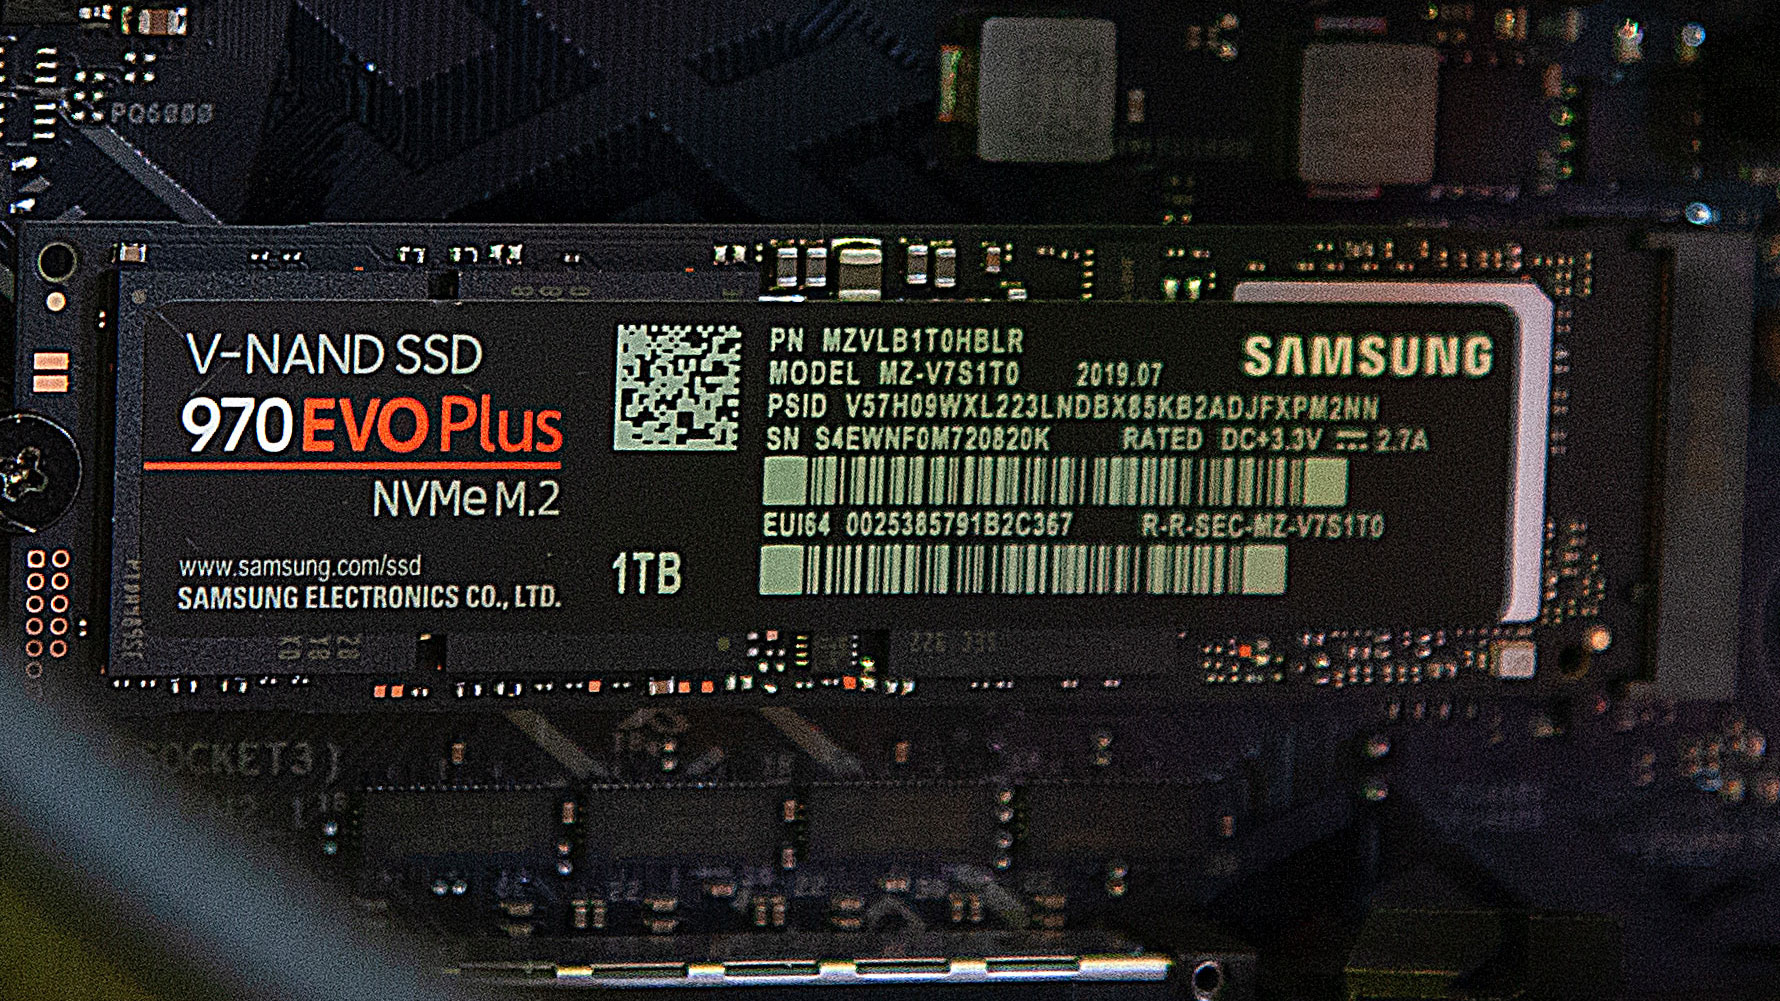 You're going to want a speedy NVMe SSD if you want to keep up with the PS5